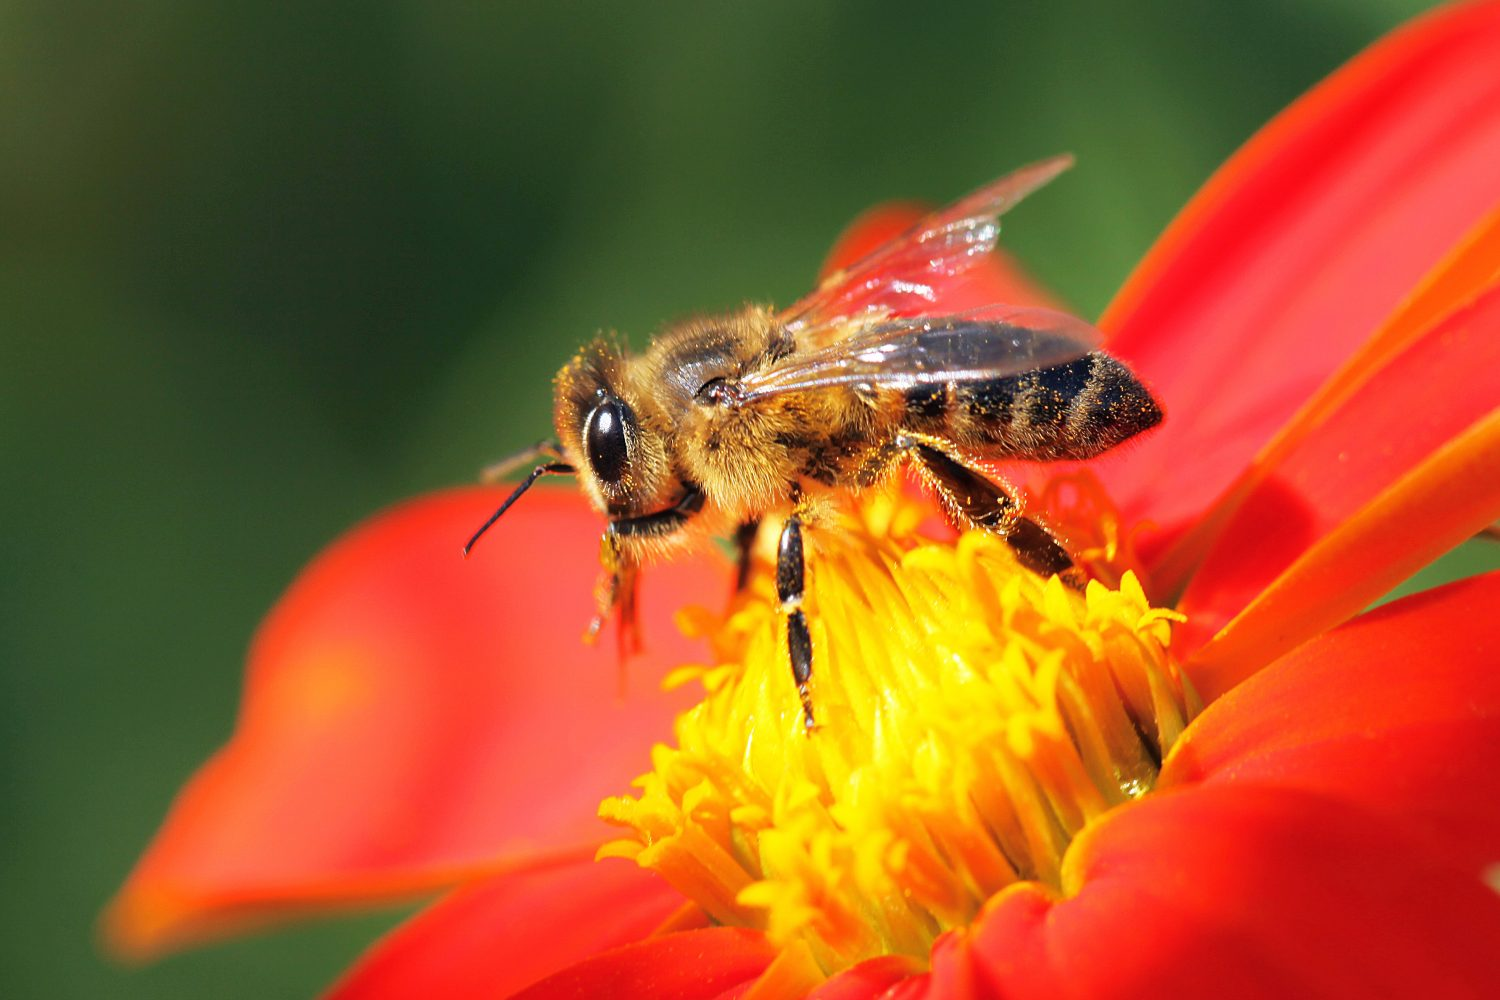 Neonicotinoid pesticides are slowly killing bees | PBS NewsHour